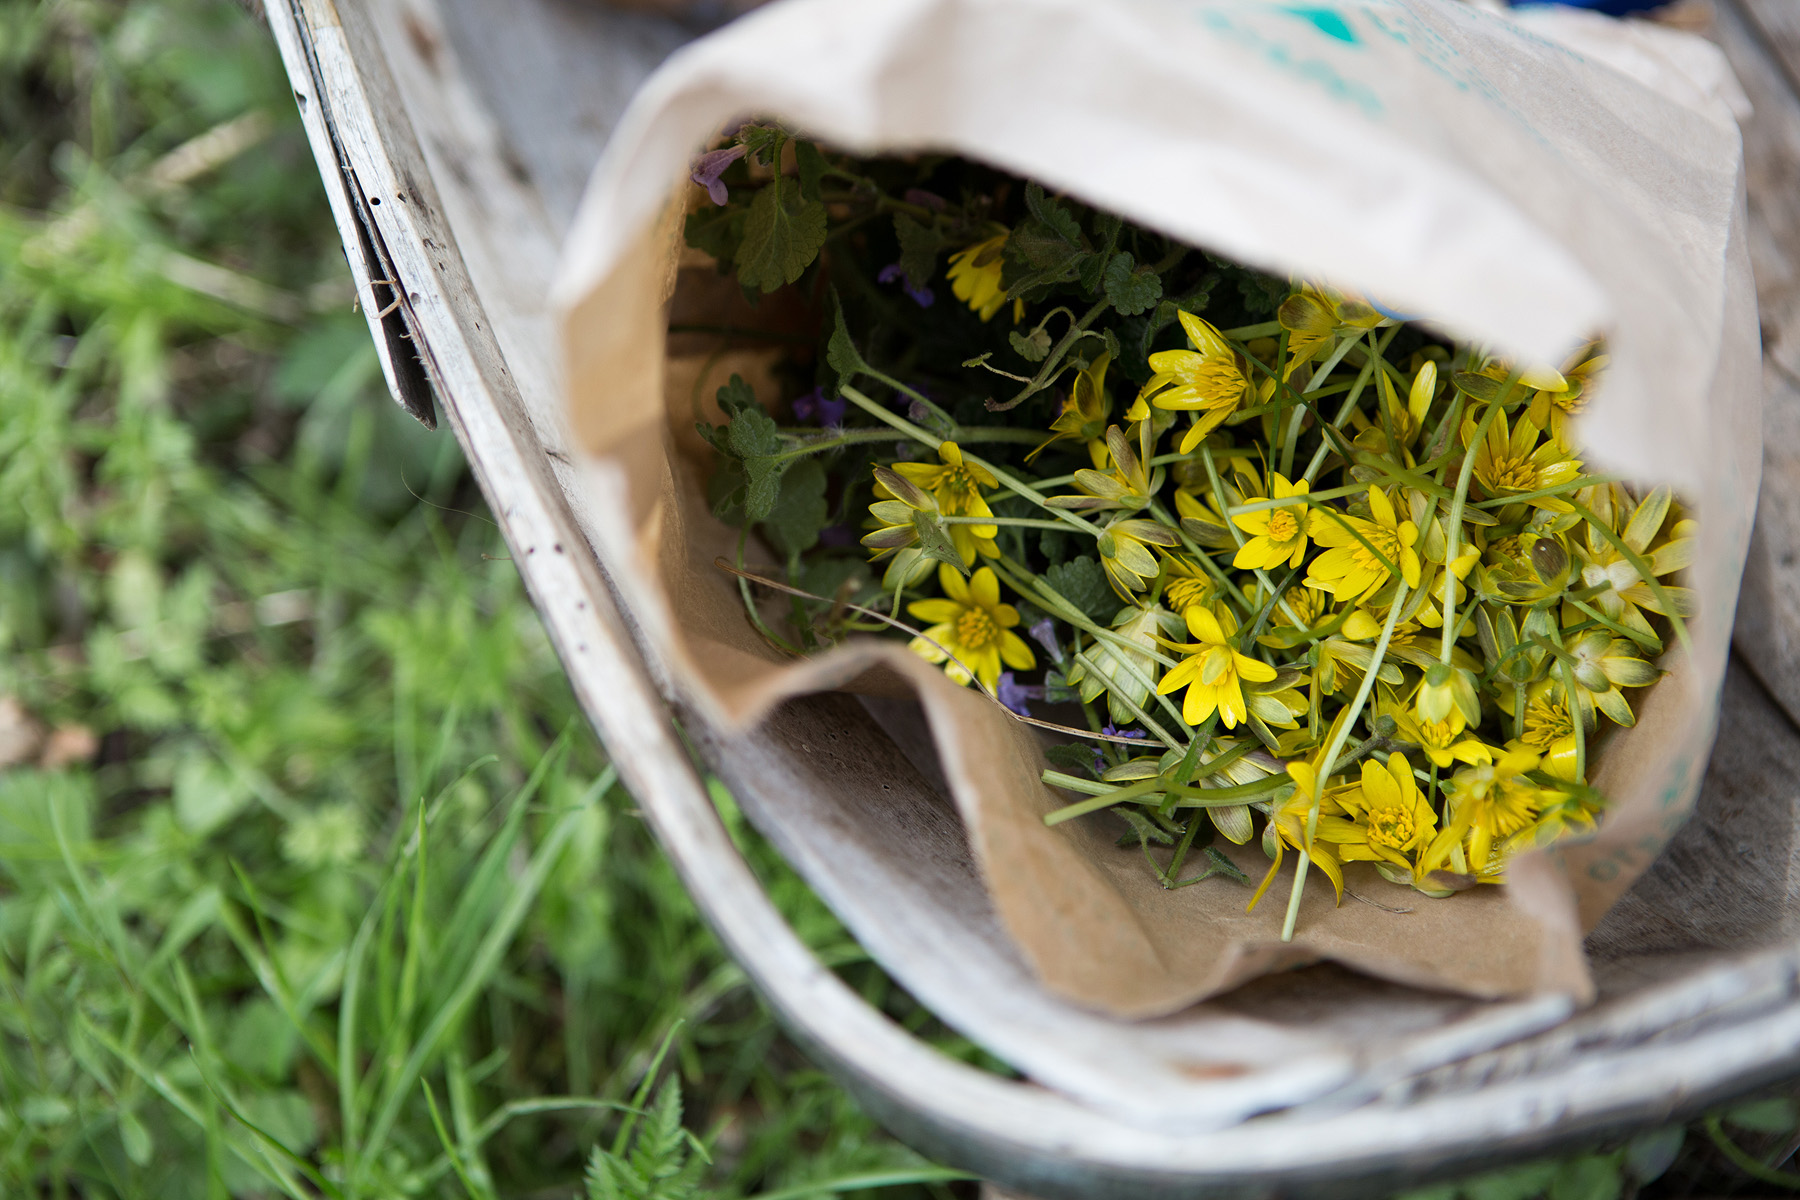 Daylesford_Celandine in a bag.jpg